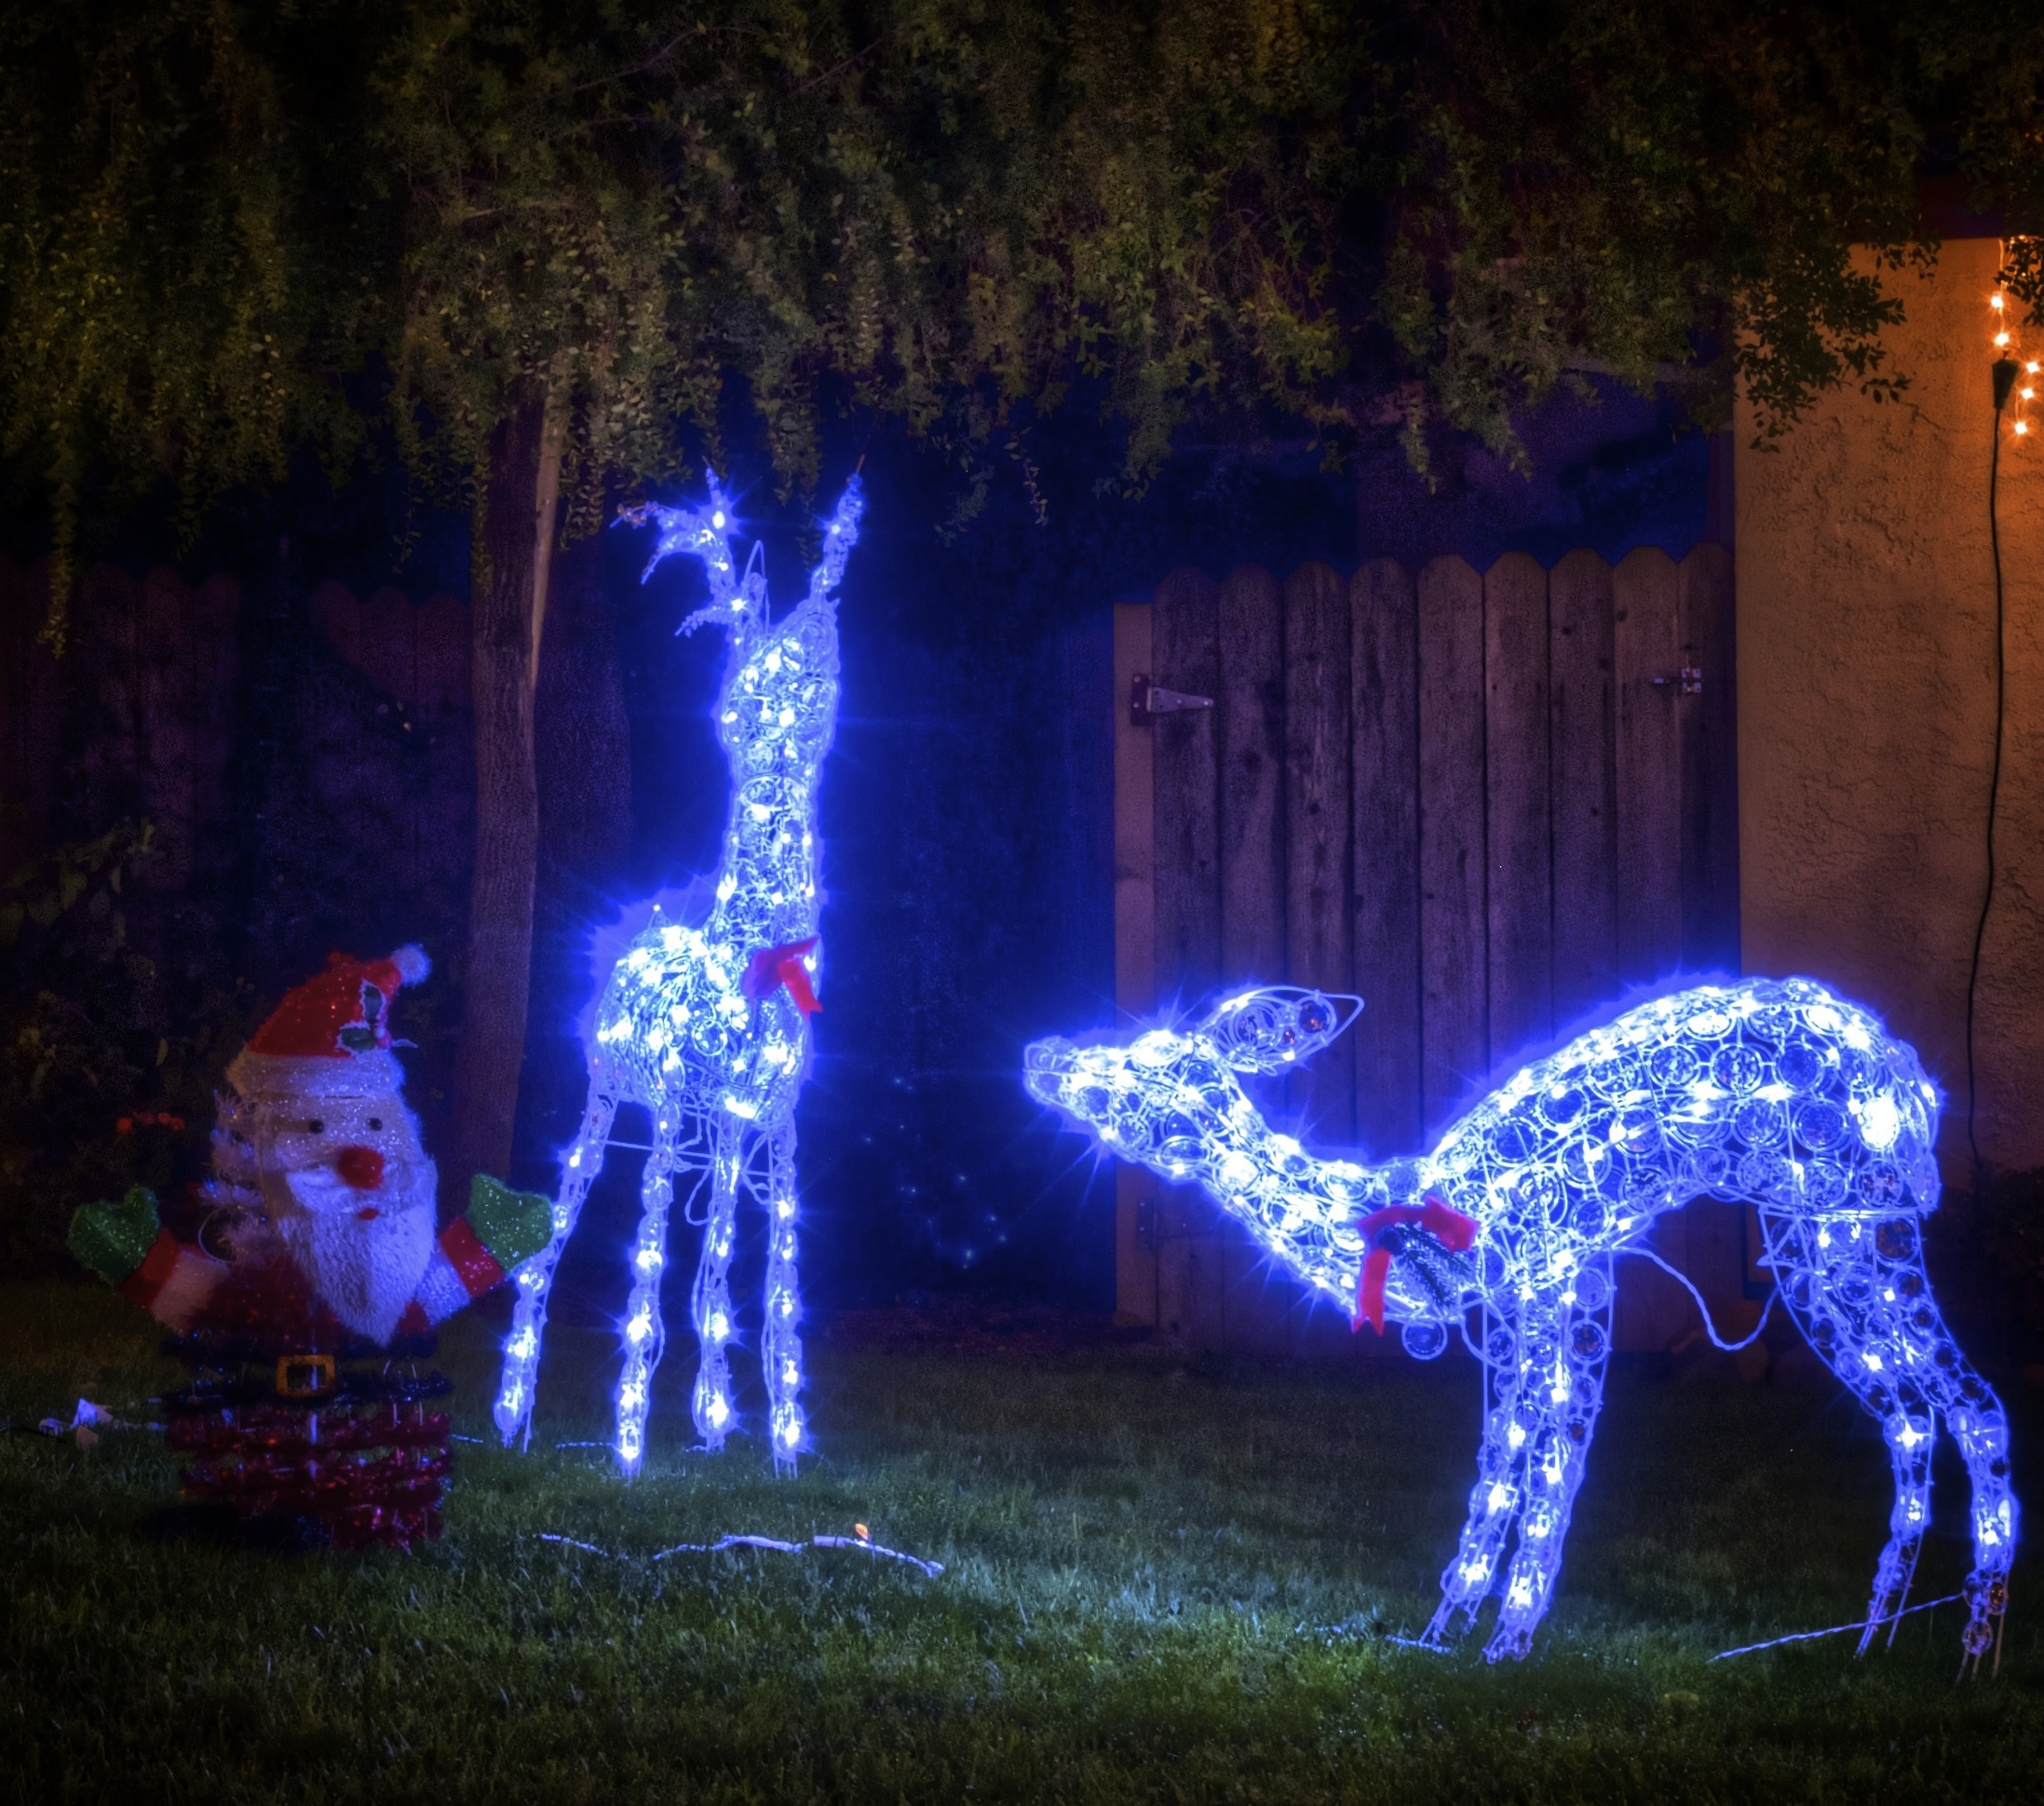 I, for one, welcome our new four legged, glowing overlords.